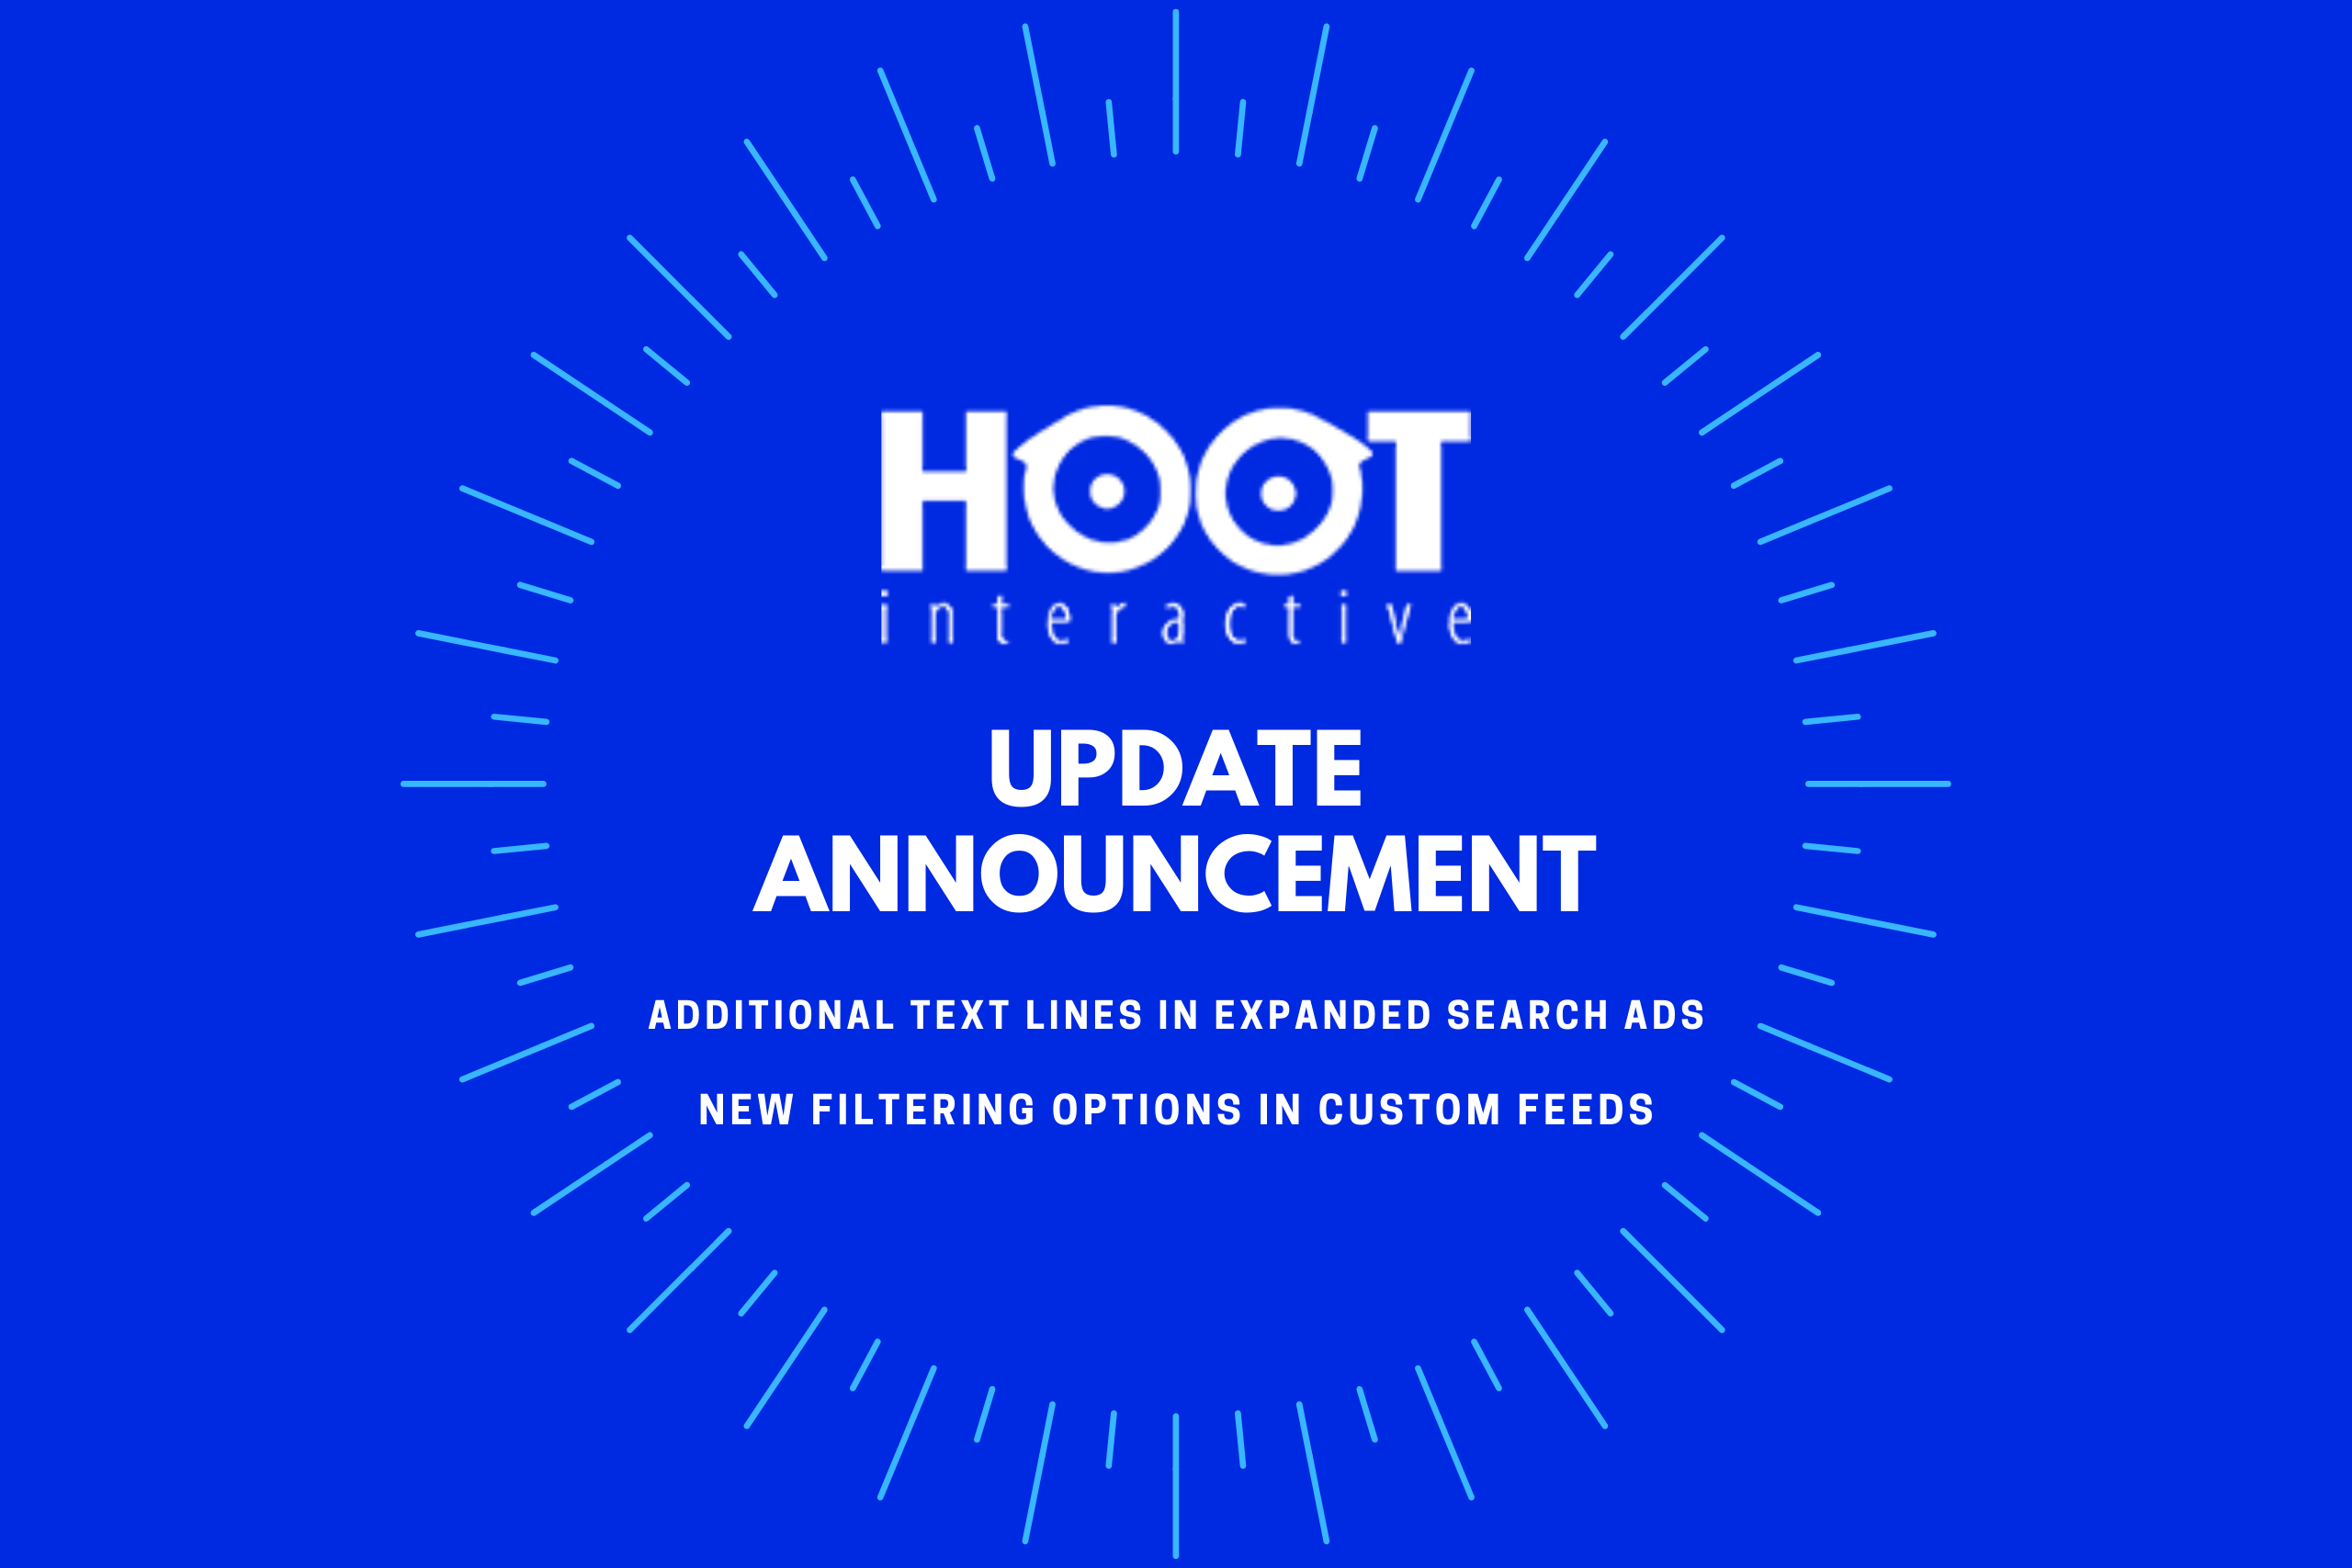 Hoot Update Announcement - Additional Text Links for Search Ads